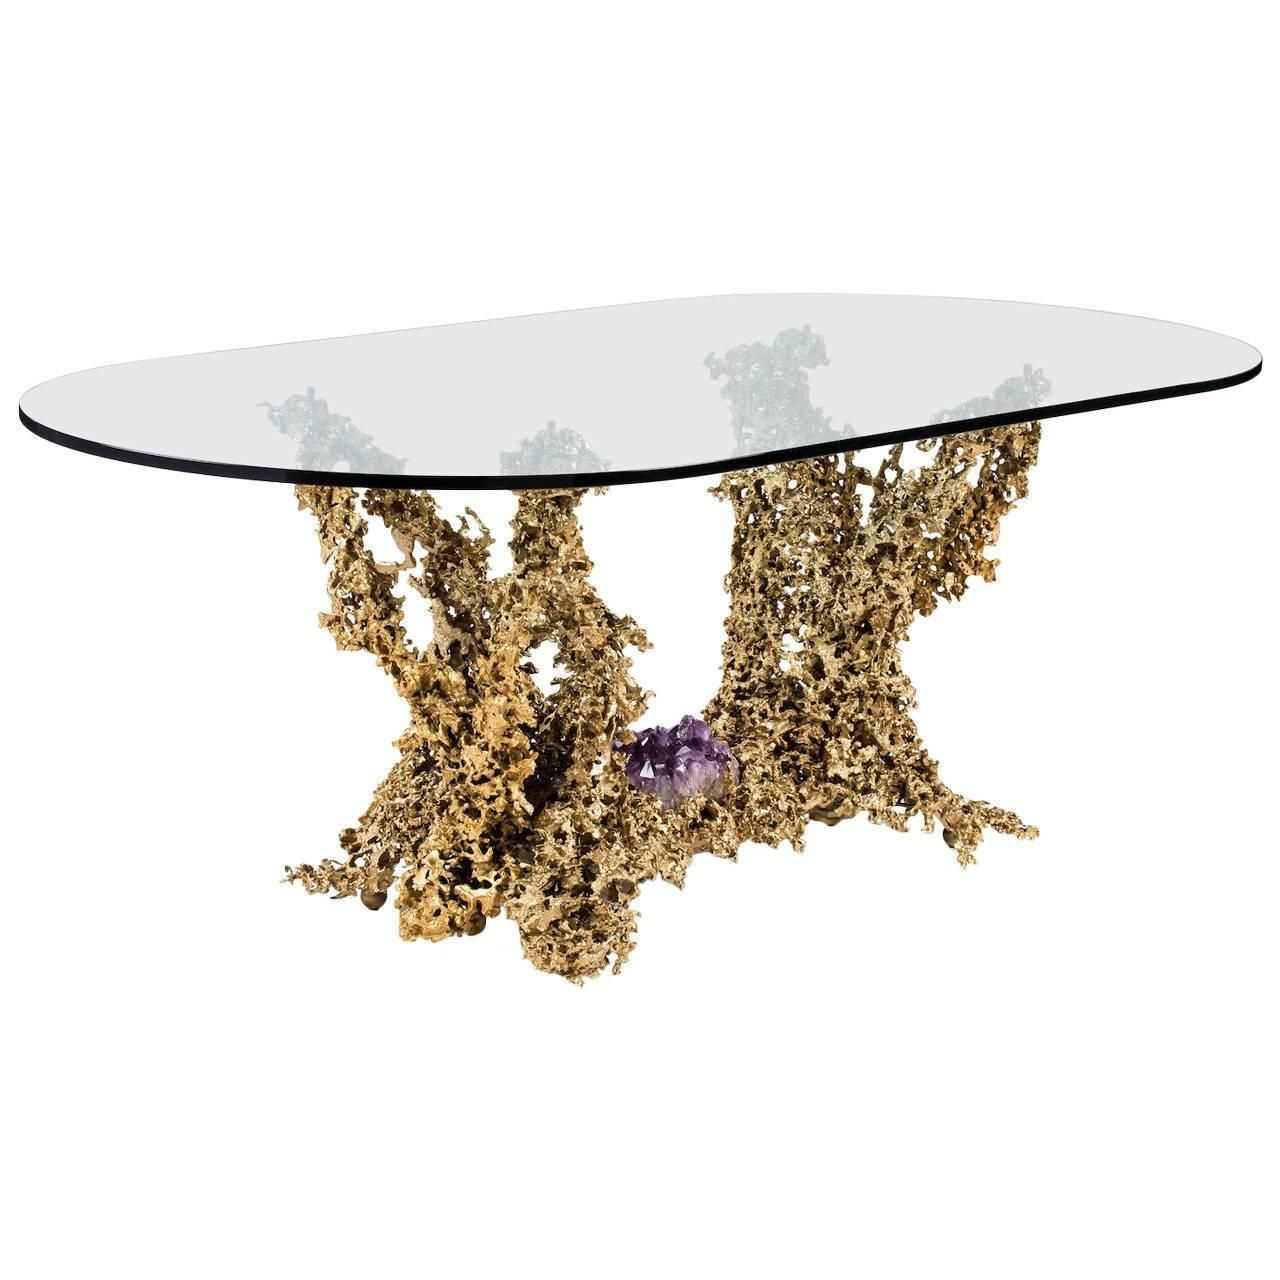 Oval Glass Top With Bronze Base Dining Table 1stdibs Com Dining Table Vintage Dining Room Table Dining Table Bases